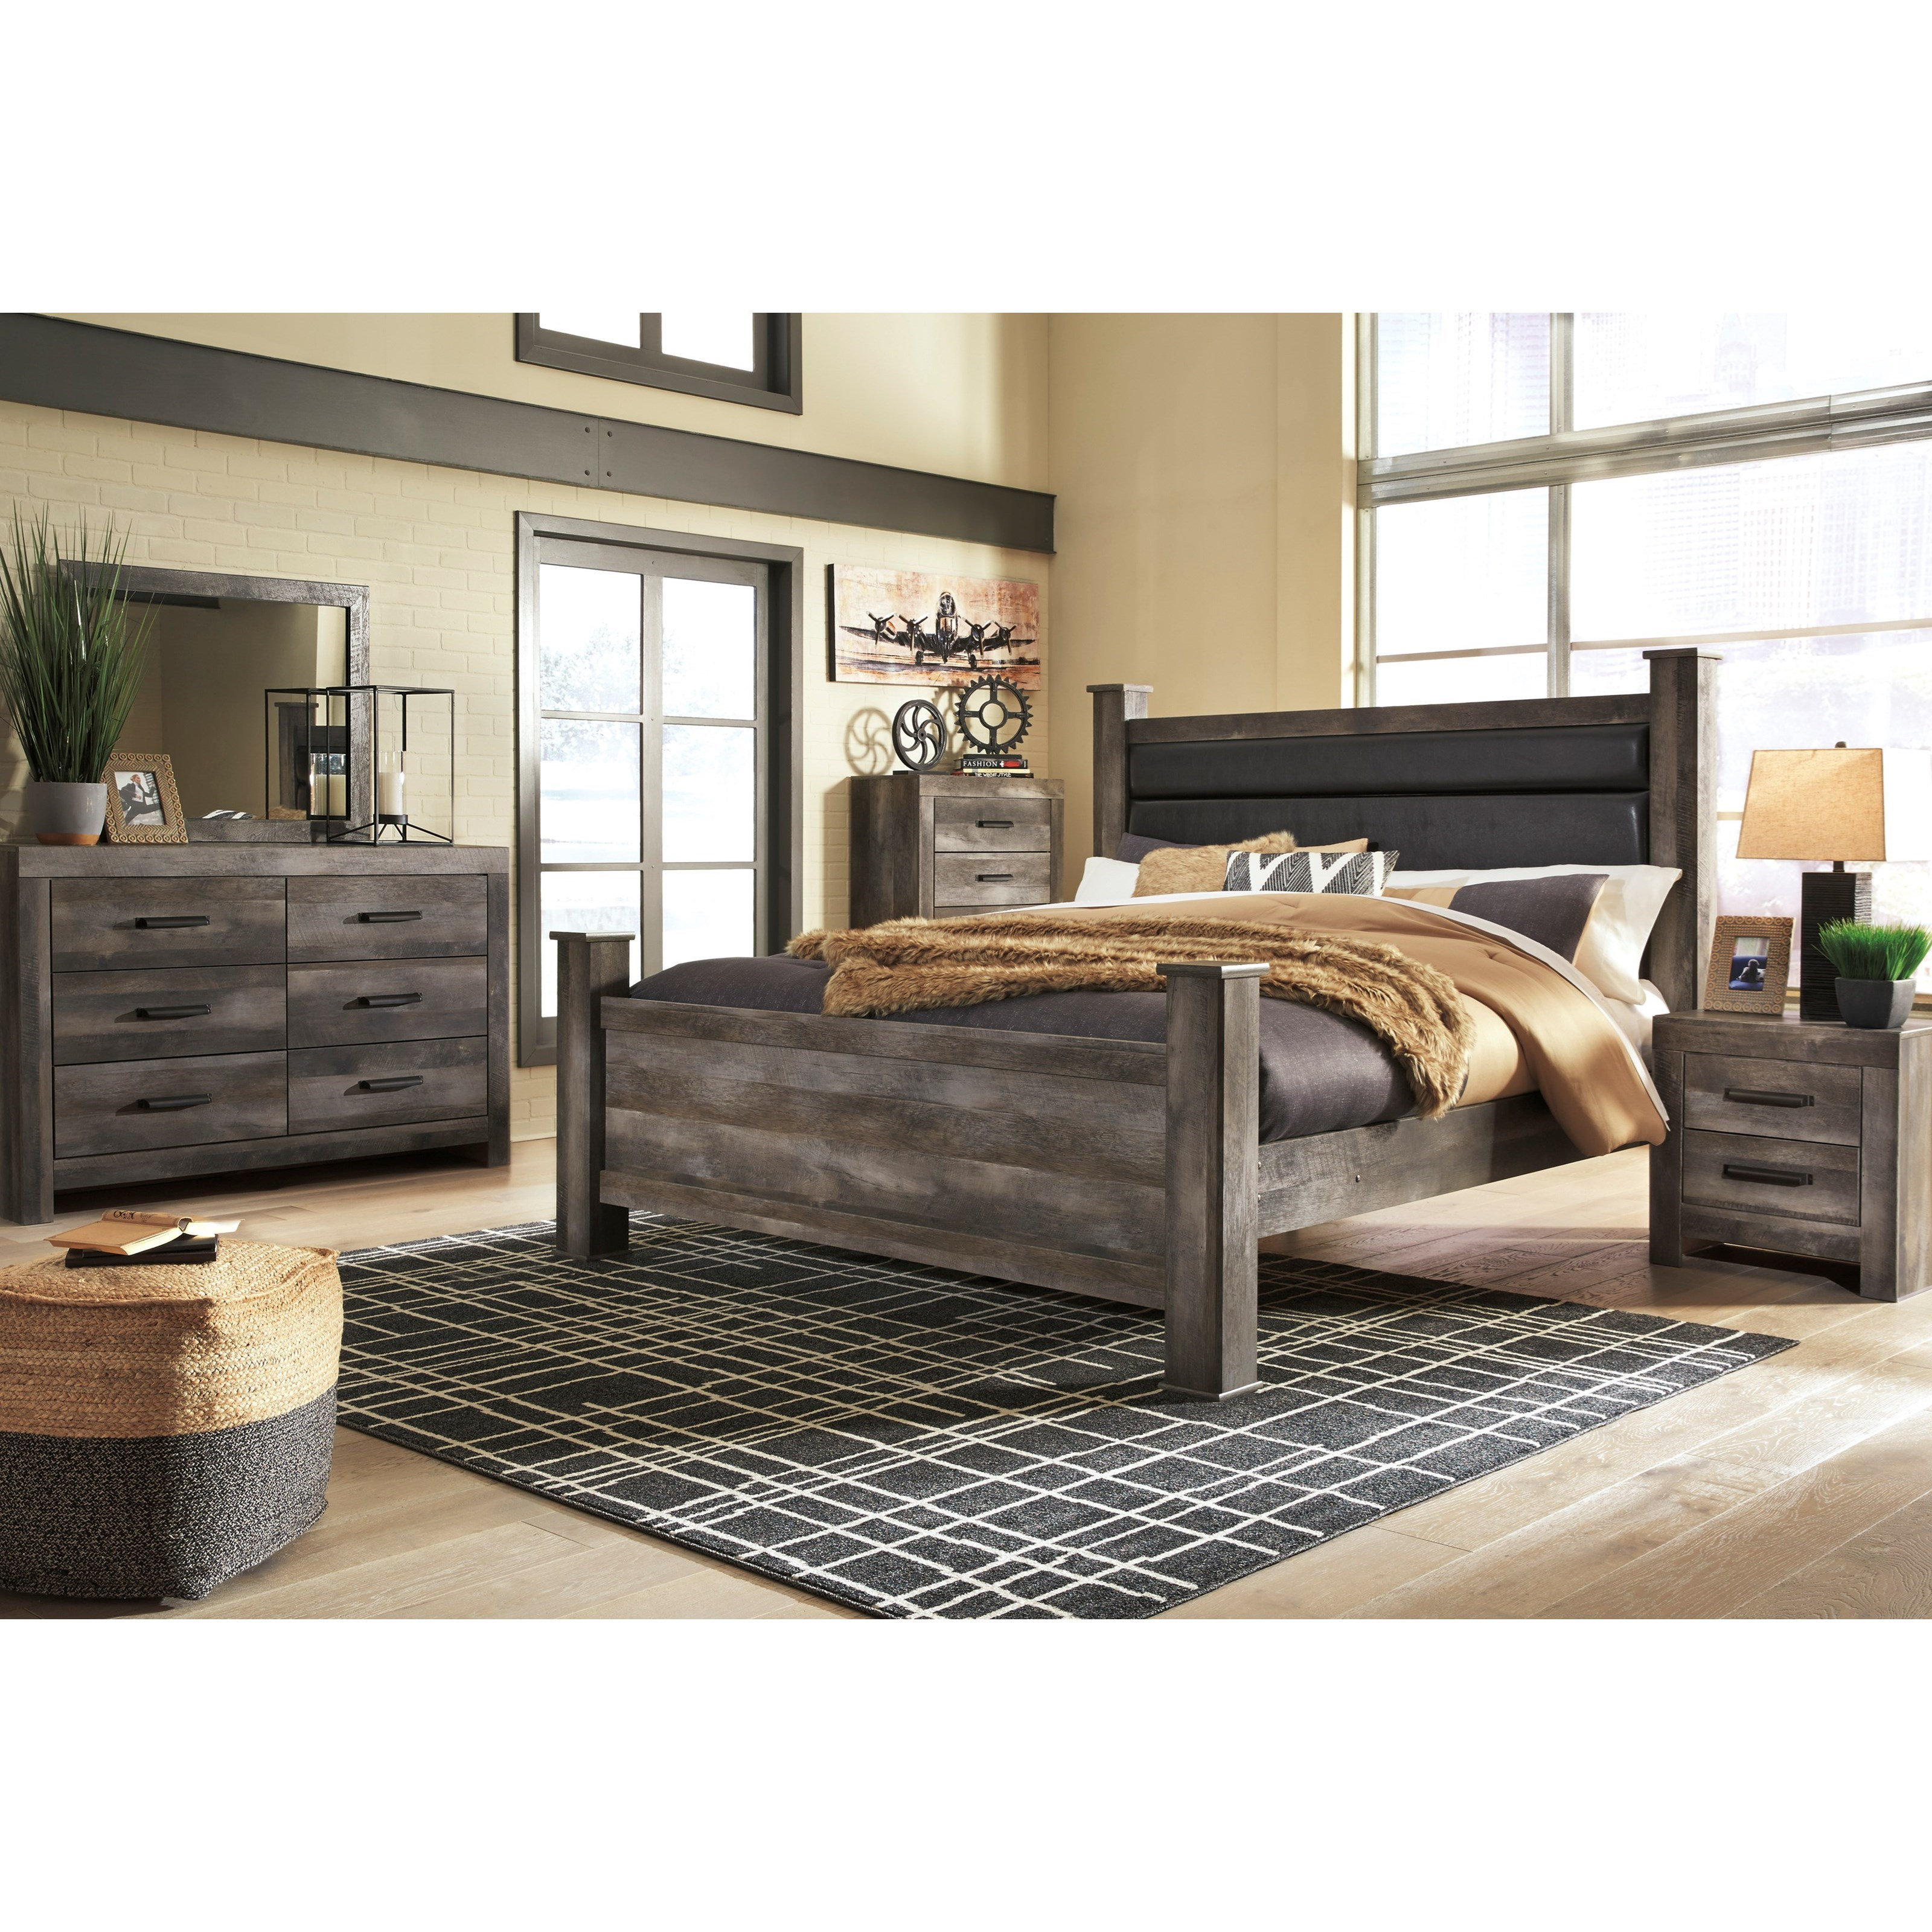 Wynnlow King Bedroom Group by Signature Design by Ashley at Northeast Factory Direct